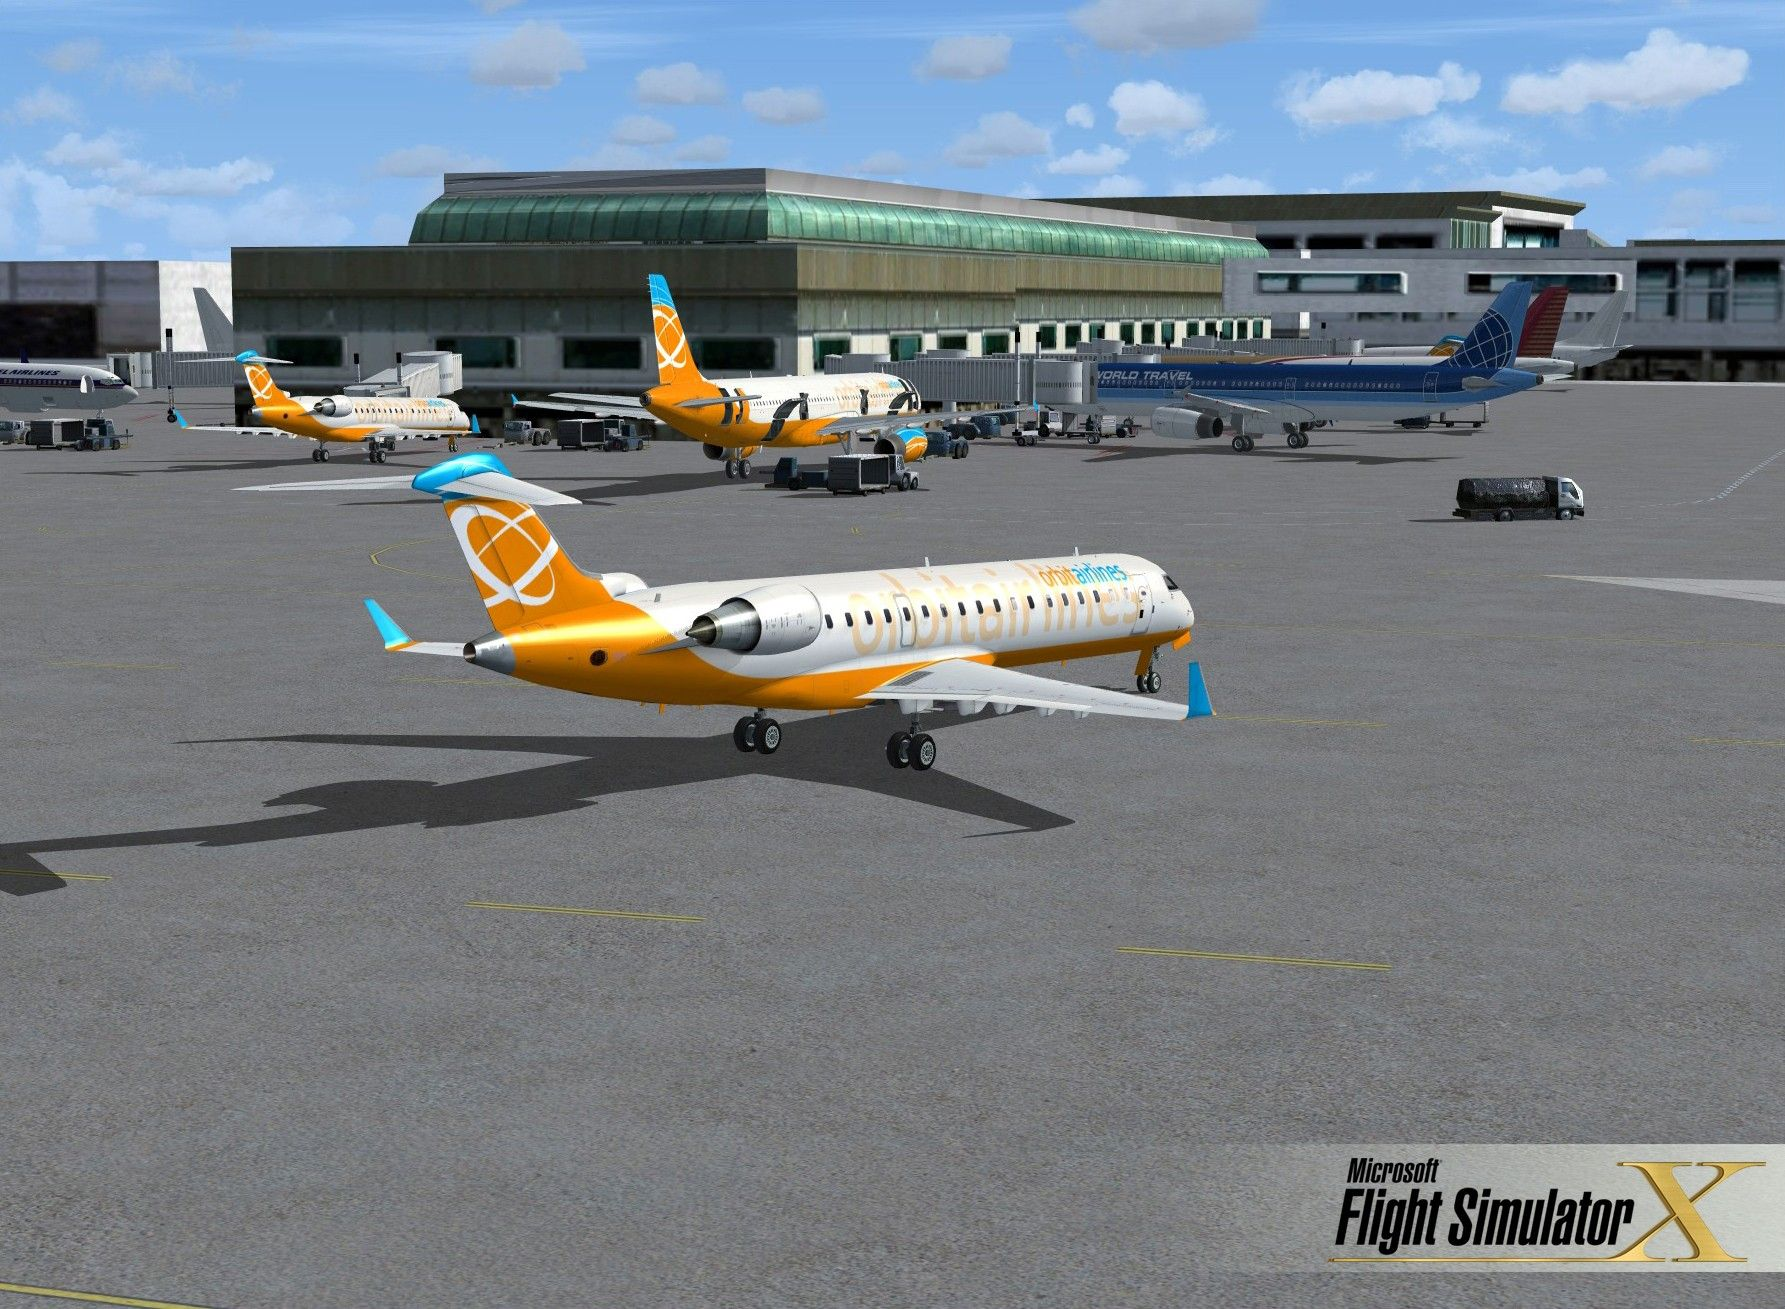 Download Free Flight Simulator Games | 7 Aug 2015 ... on google satellite live camera, facebook airplane, mapquest by airplane, apple maps airplane, google earth airplane, google airplane simulator, sketchup airplane,